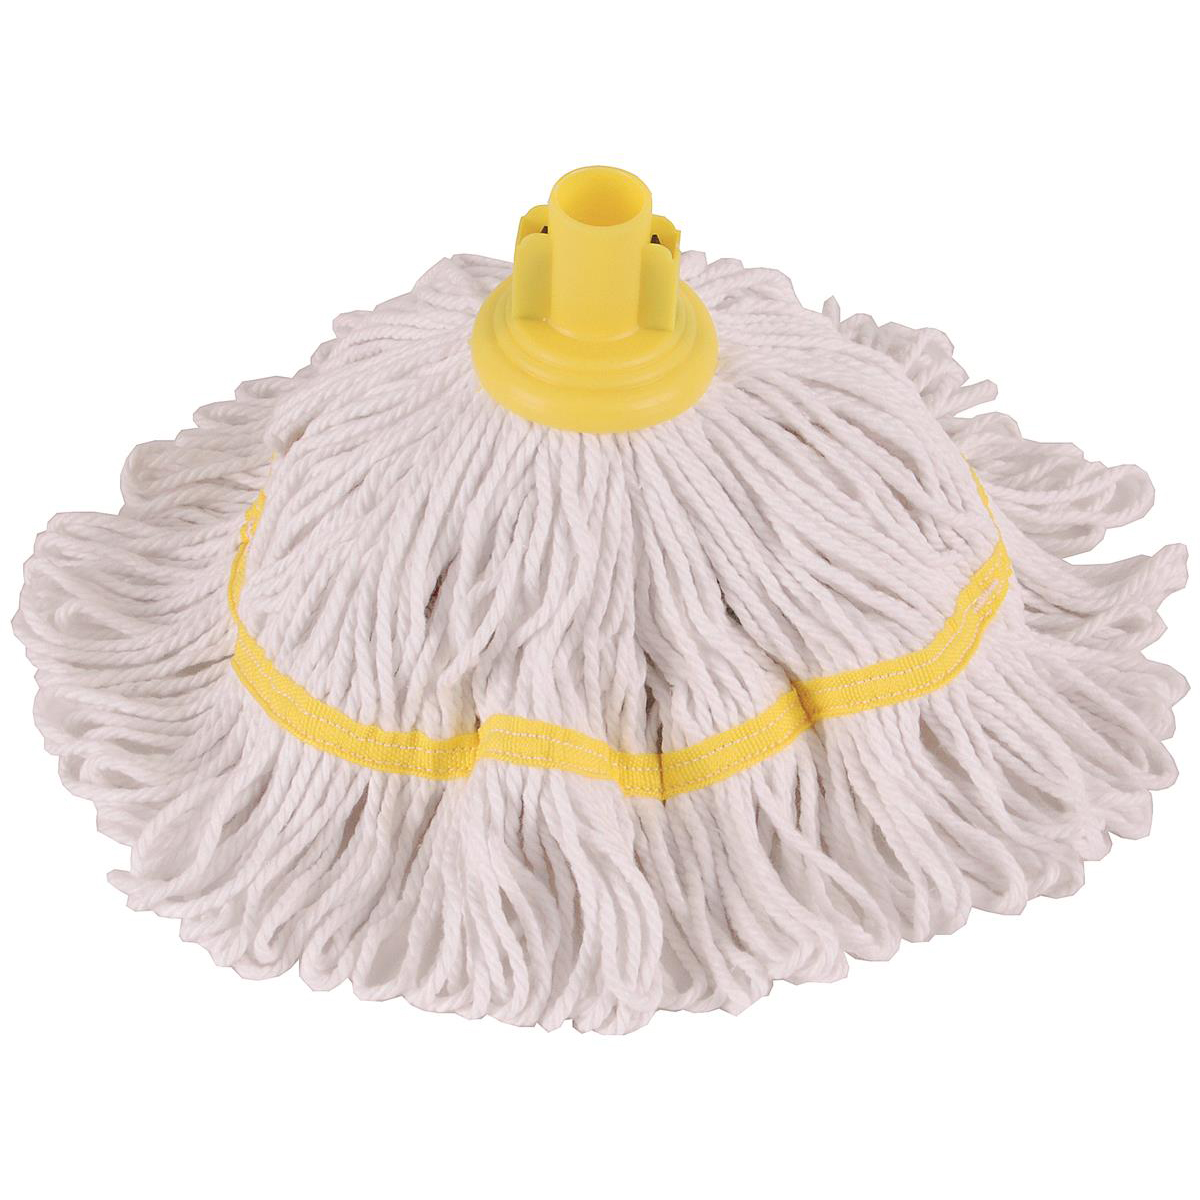 Robert Scott & Sons Hygiemix T1 Socket Cotton & Synthetic Colour-coded Mop 200g Yellow Ref MHH200Y